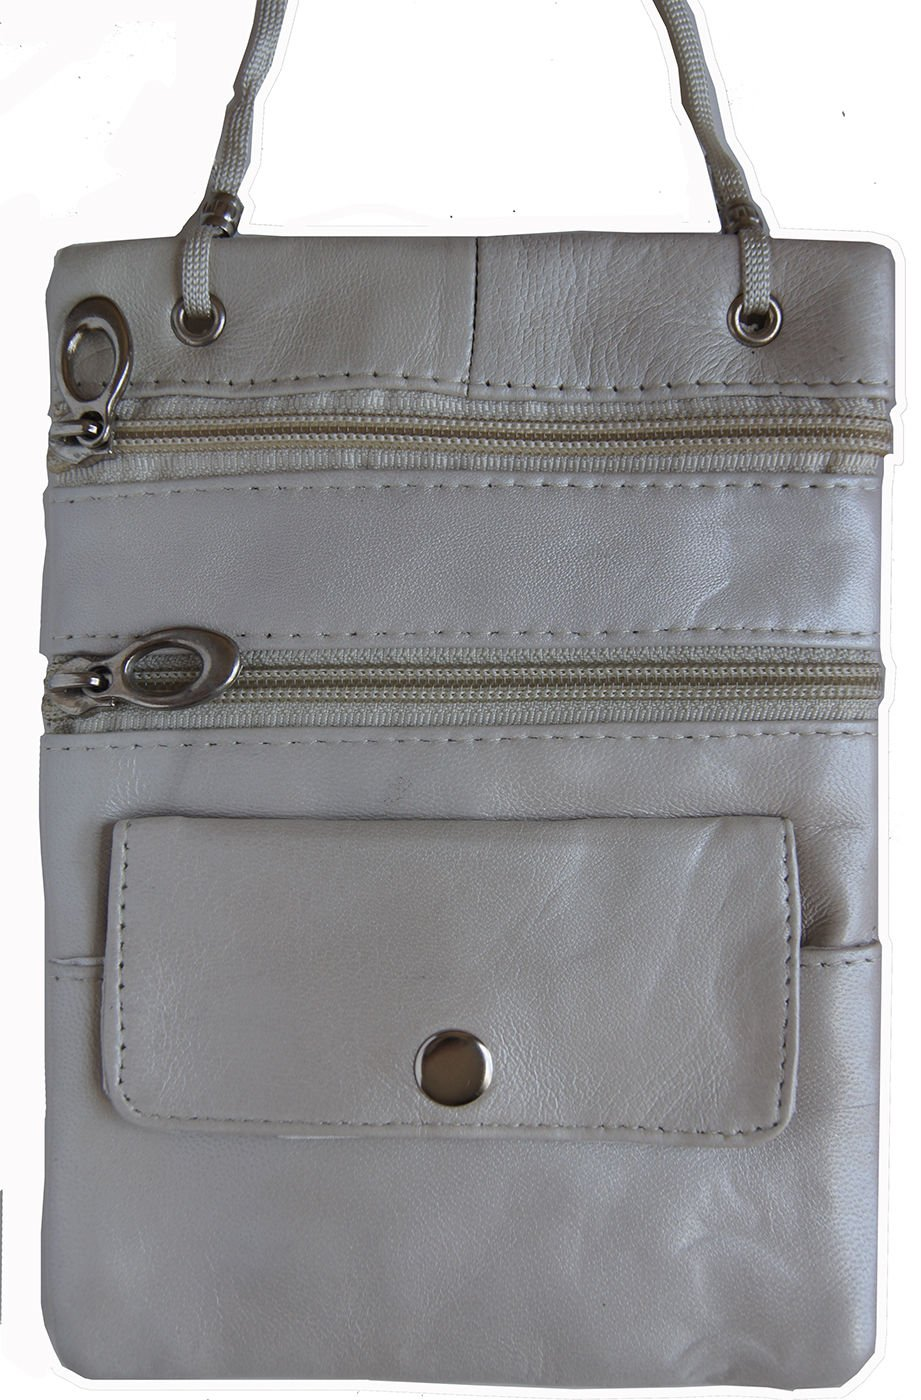 Pearl Genuine Leather Passport Id Documents Holder Neck Travel Pouch Bag